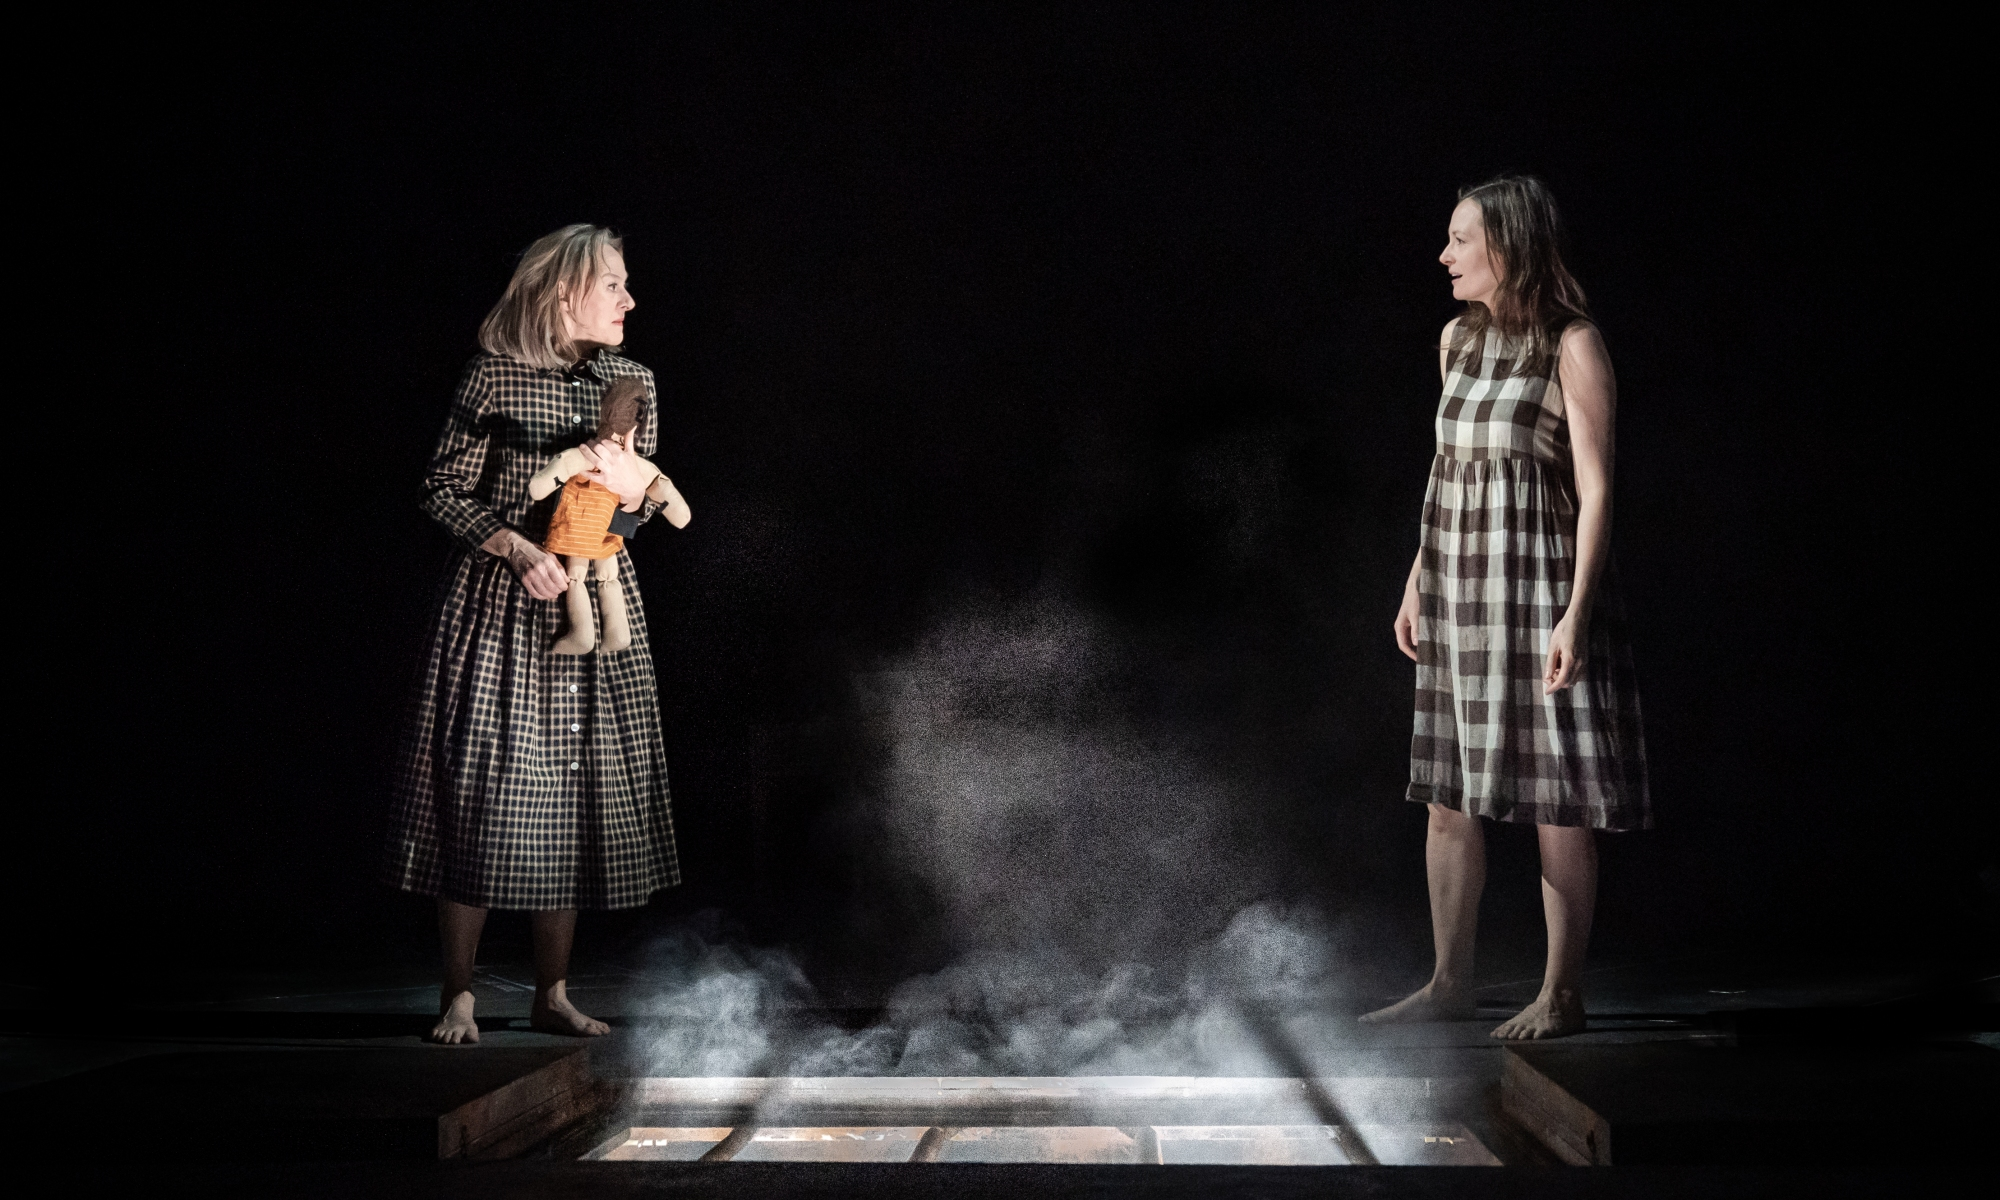 A woman on the left holds a toy doll and wears a black dress. On the right, another woman in a check dress. In between them on the floor is a window which emits a white light.